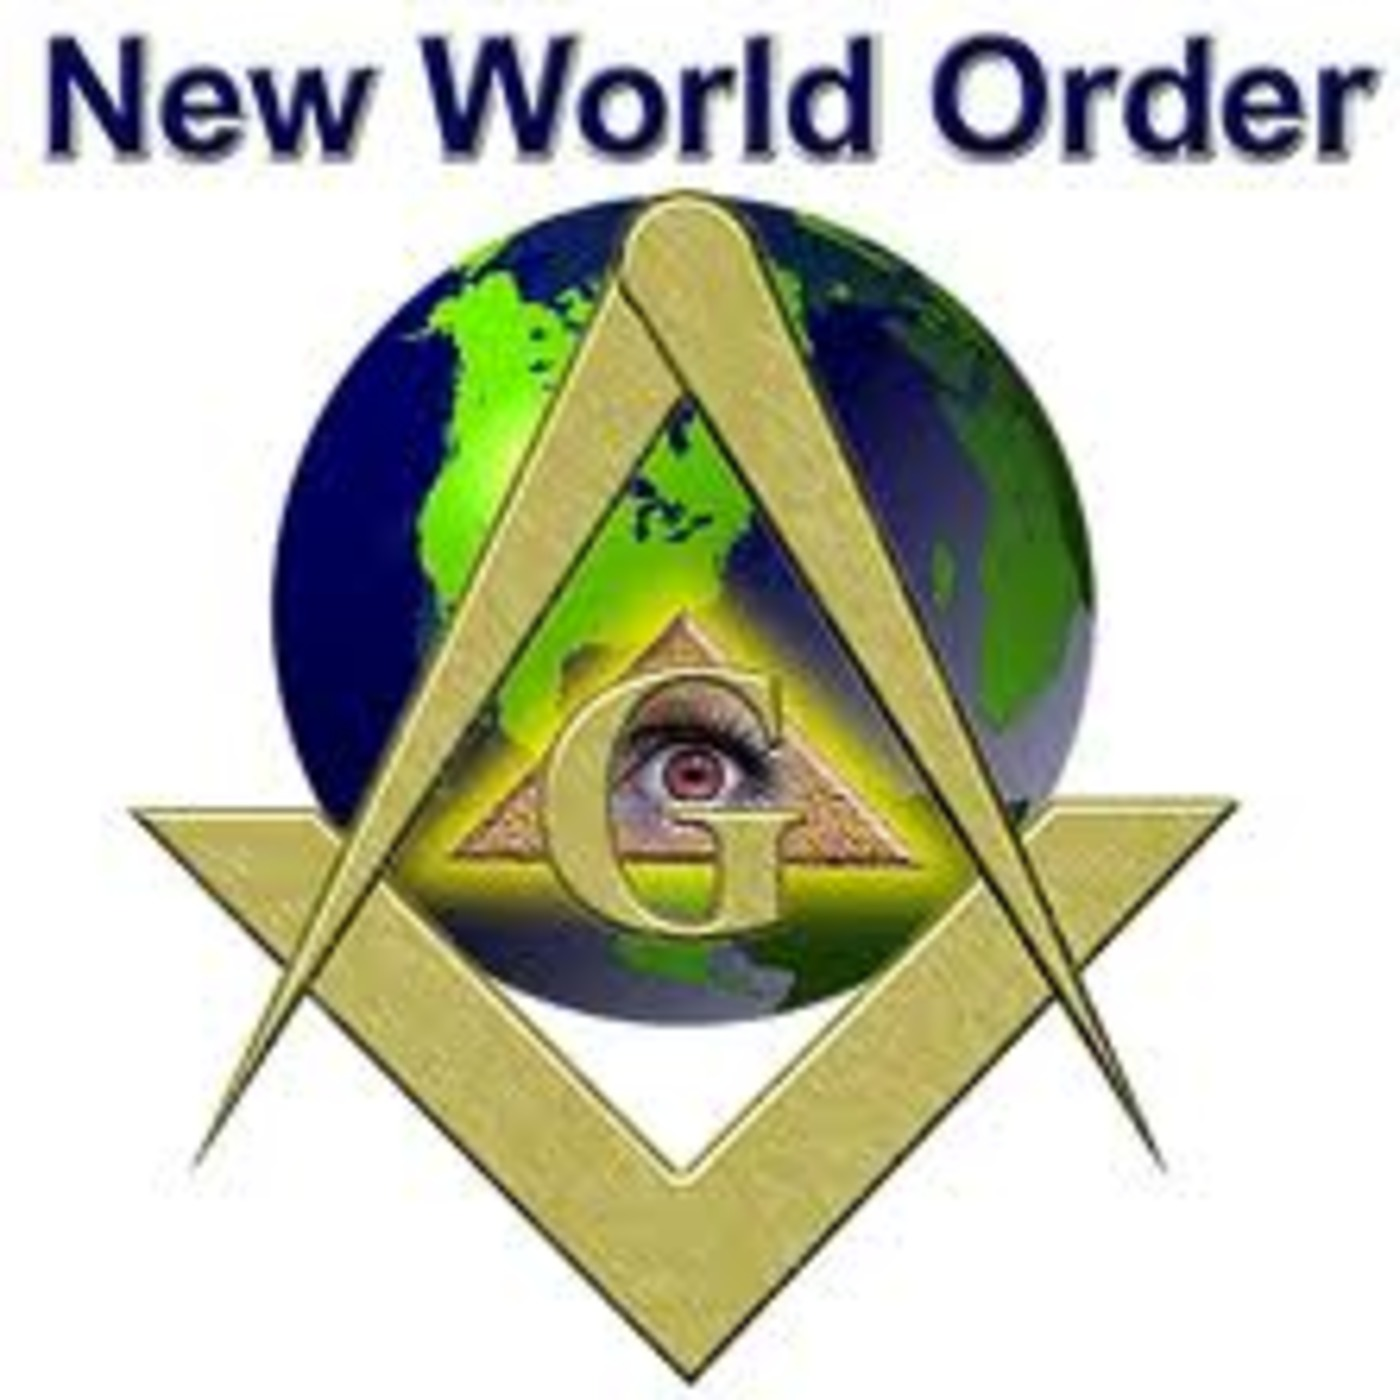 Renegade Talk Radio Conspiracy Theories Wednesday New World Order